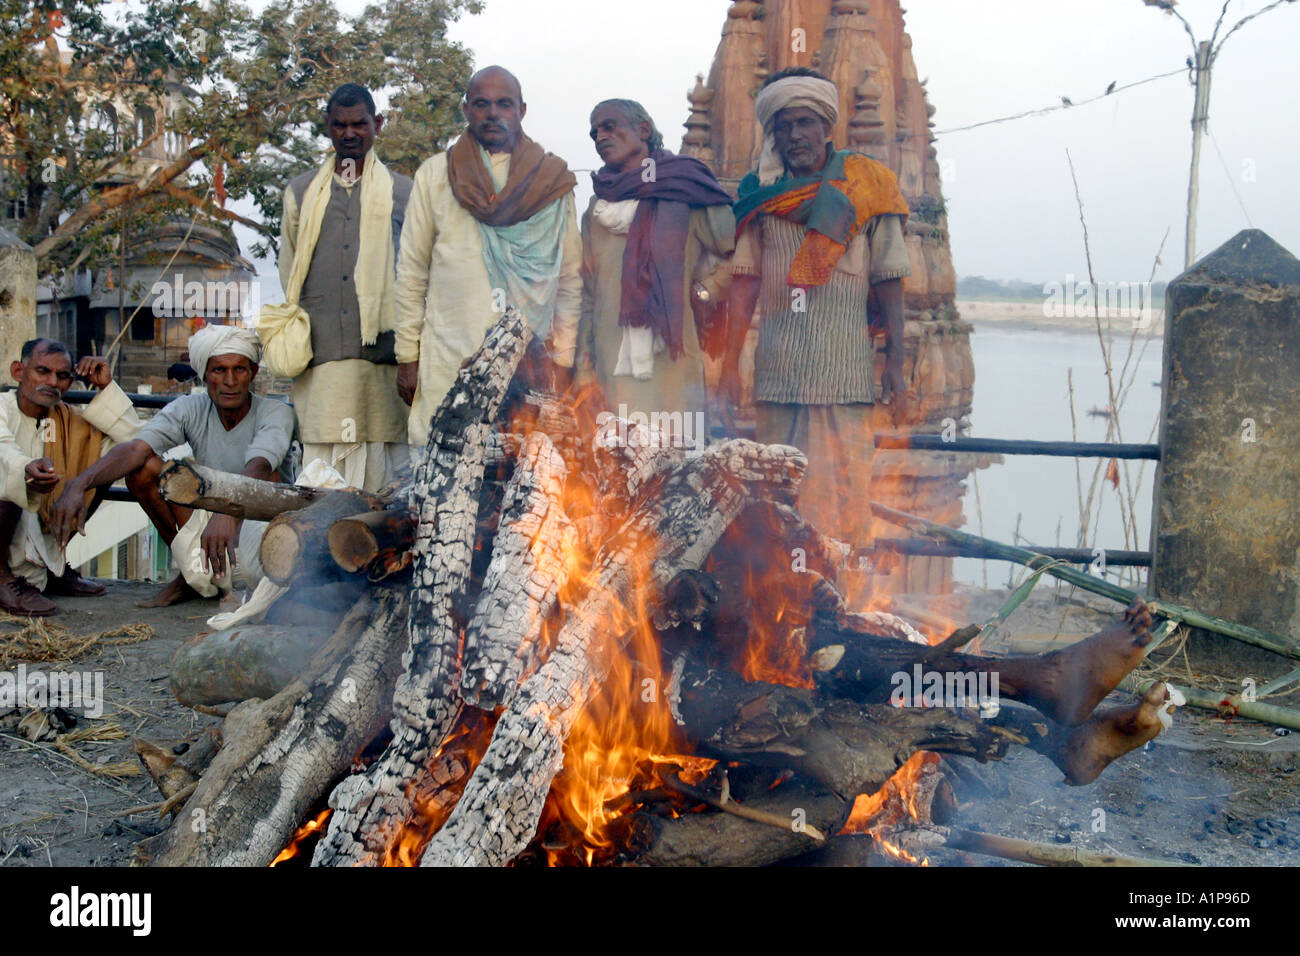 A dead body is being cremated on the banks of the holy river Ganges in Varanasi in northern India - Stock Image